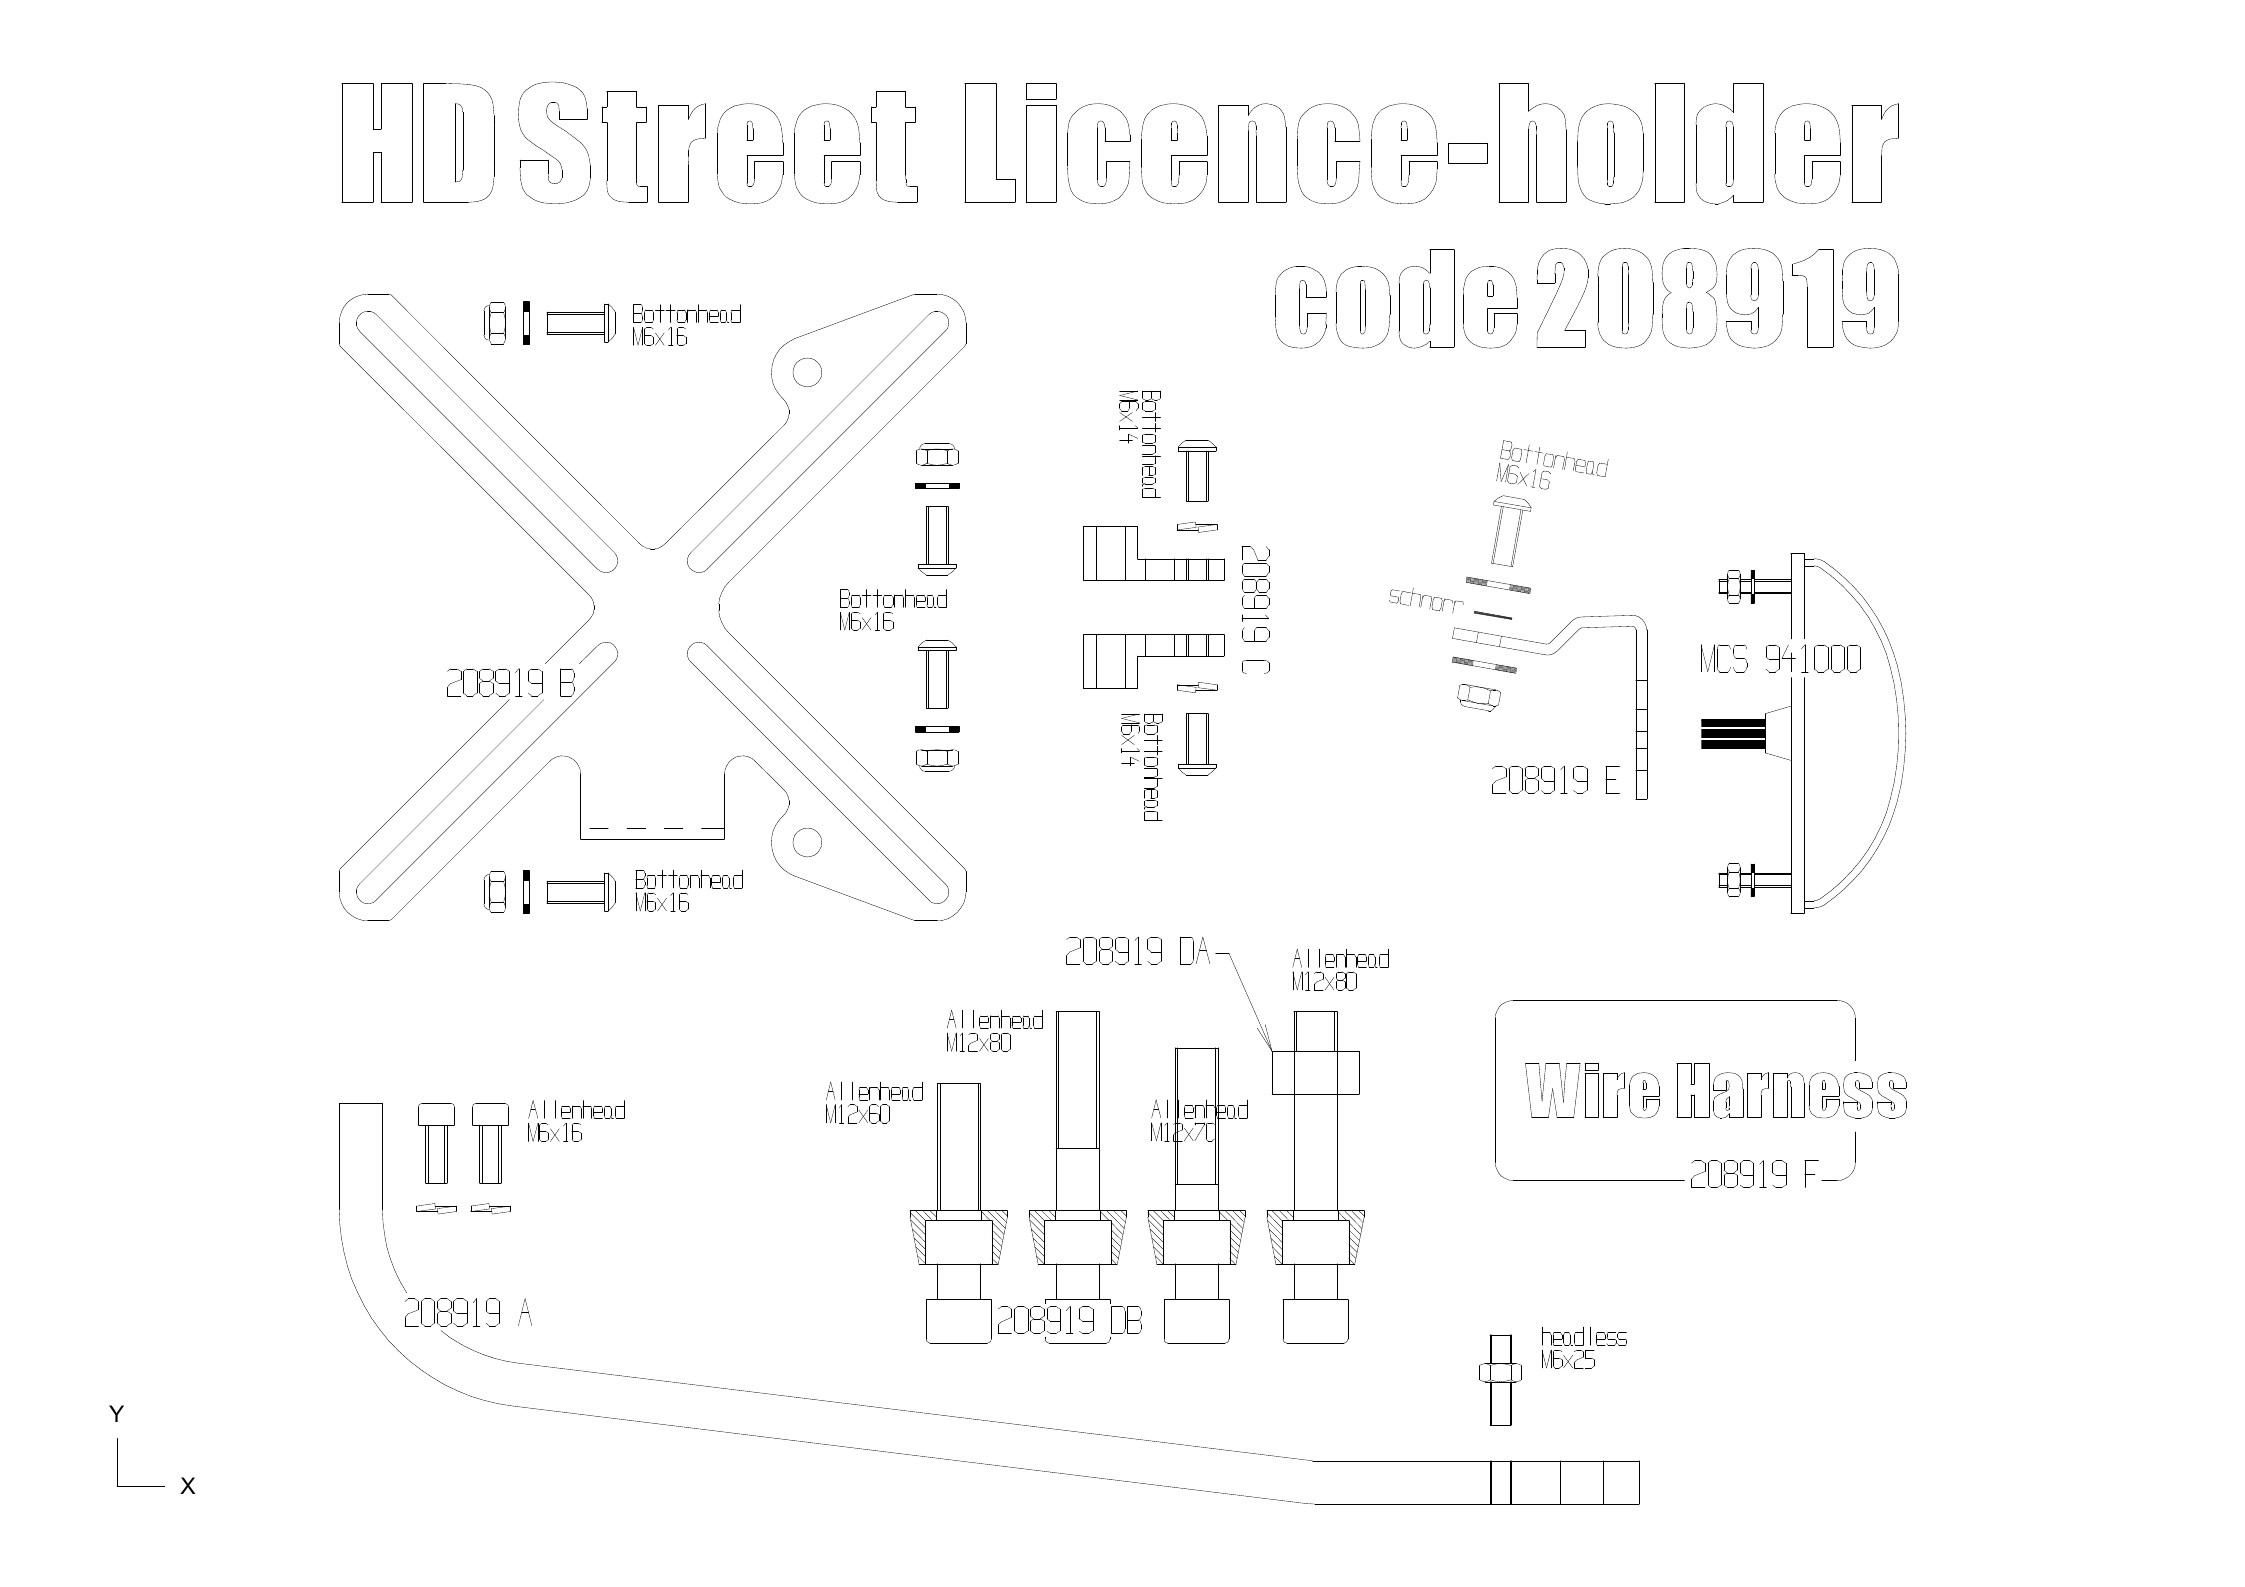 wiring diagram hotpoint refrigerator with Harley Davidson Harness Wire Holder on Wiring Diagram Kenmore Dryer additionally Ge Unit Wiring Diagram further Resistor Heater Tv Samsung likewise 00003 further Us Range Manuals.